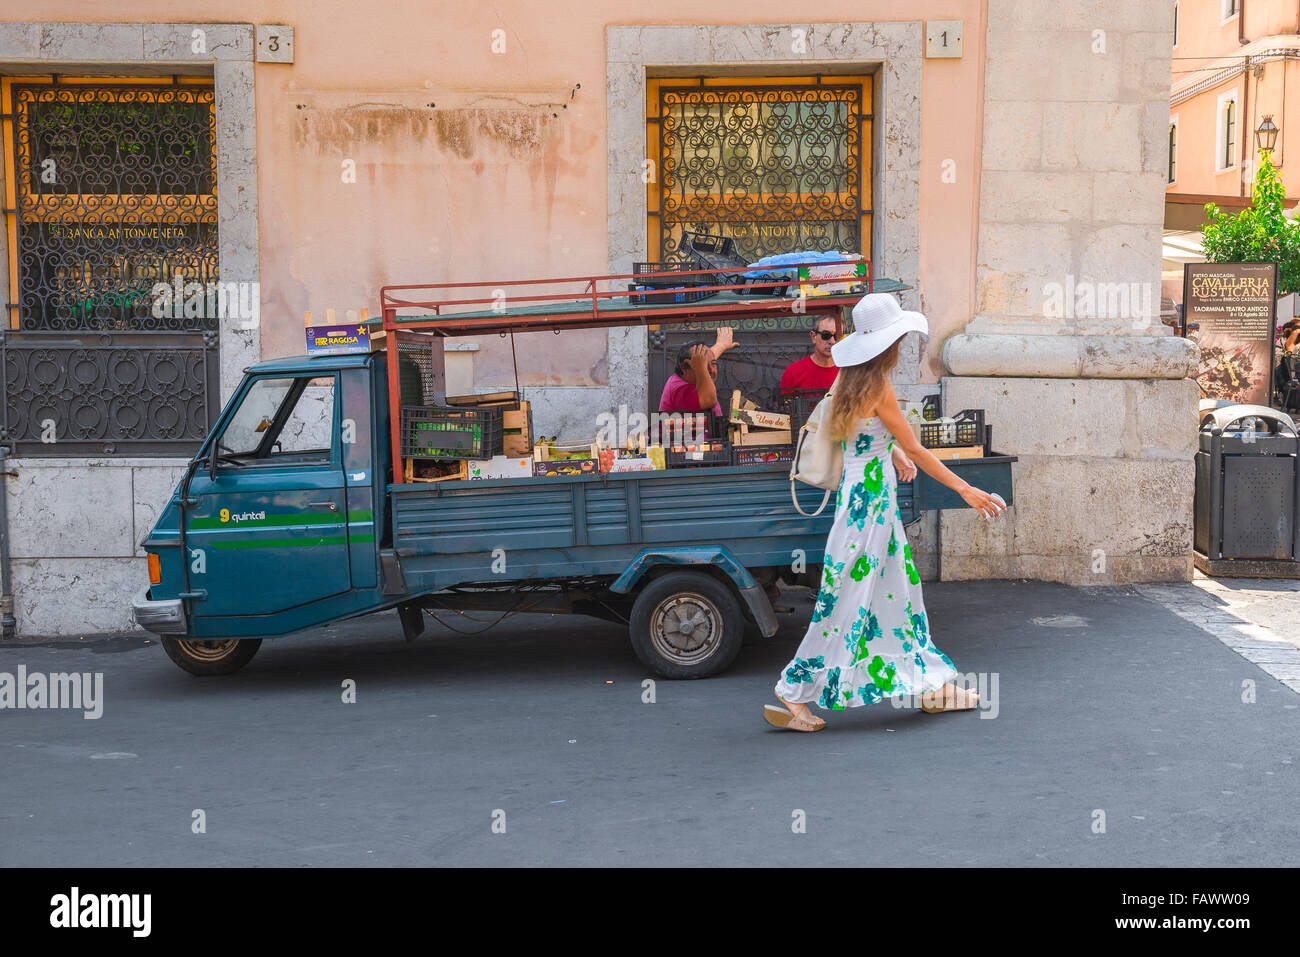 Men looking woman, view of two men looking at a young woman in a long summer dress as she walks past a fruit vendors' Stock Photo